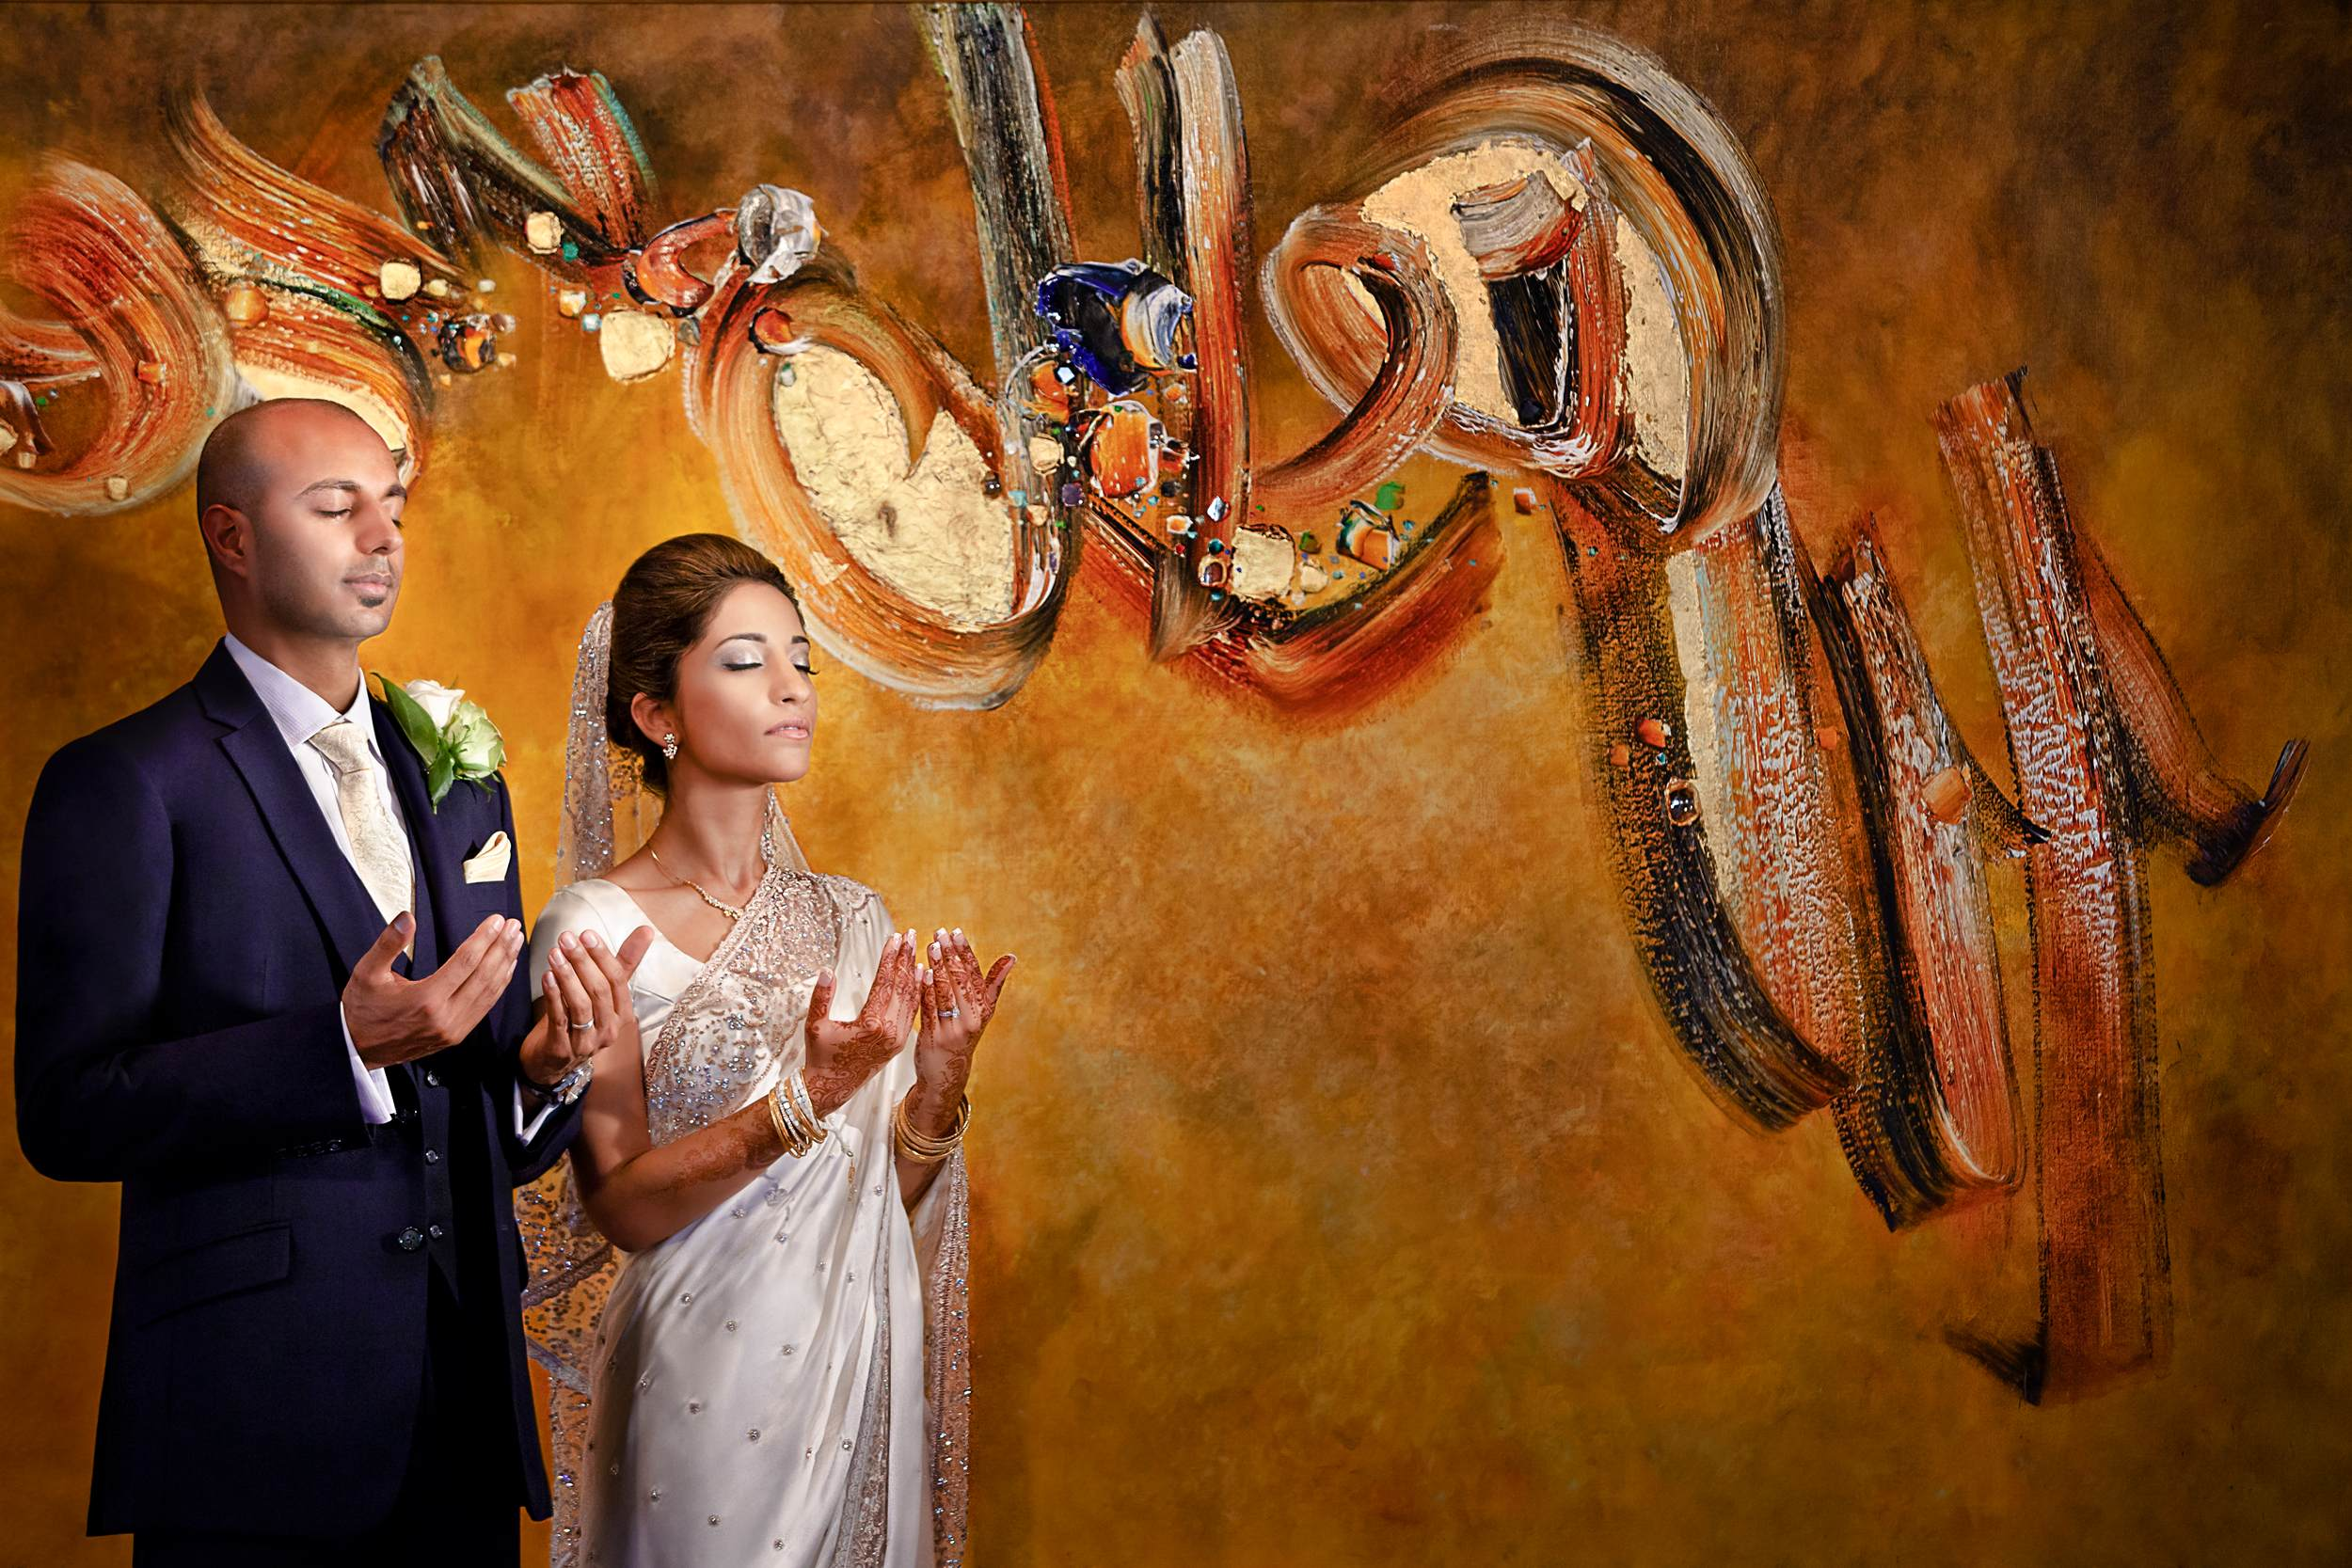 Soriya & Alim Wedding Day 0385-Edit-2.jpg